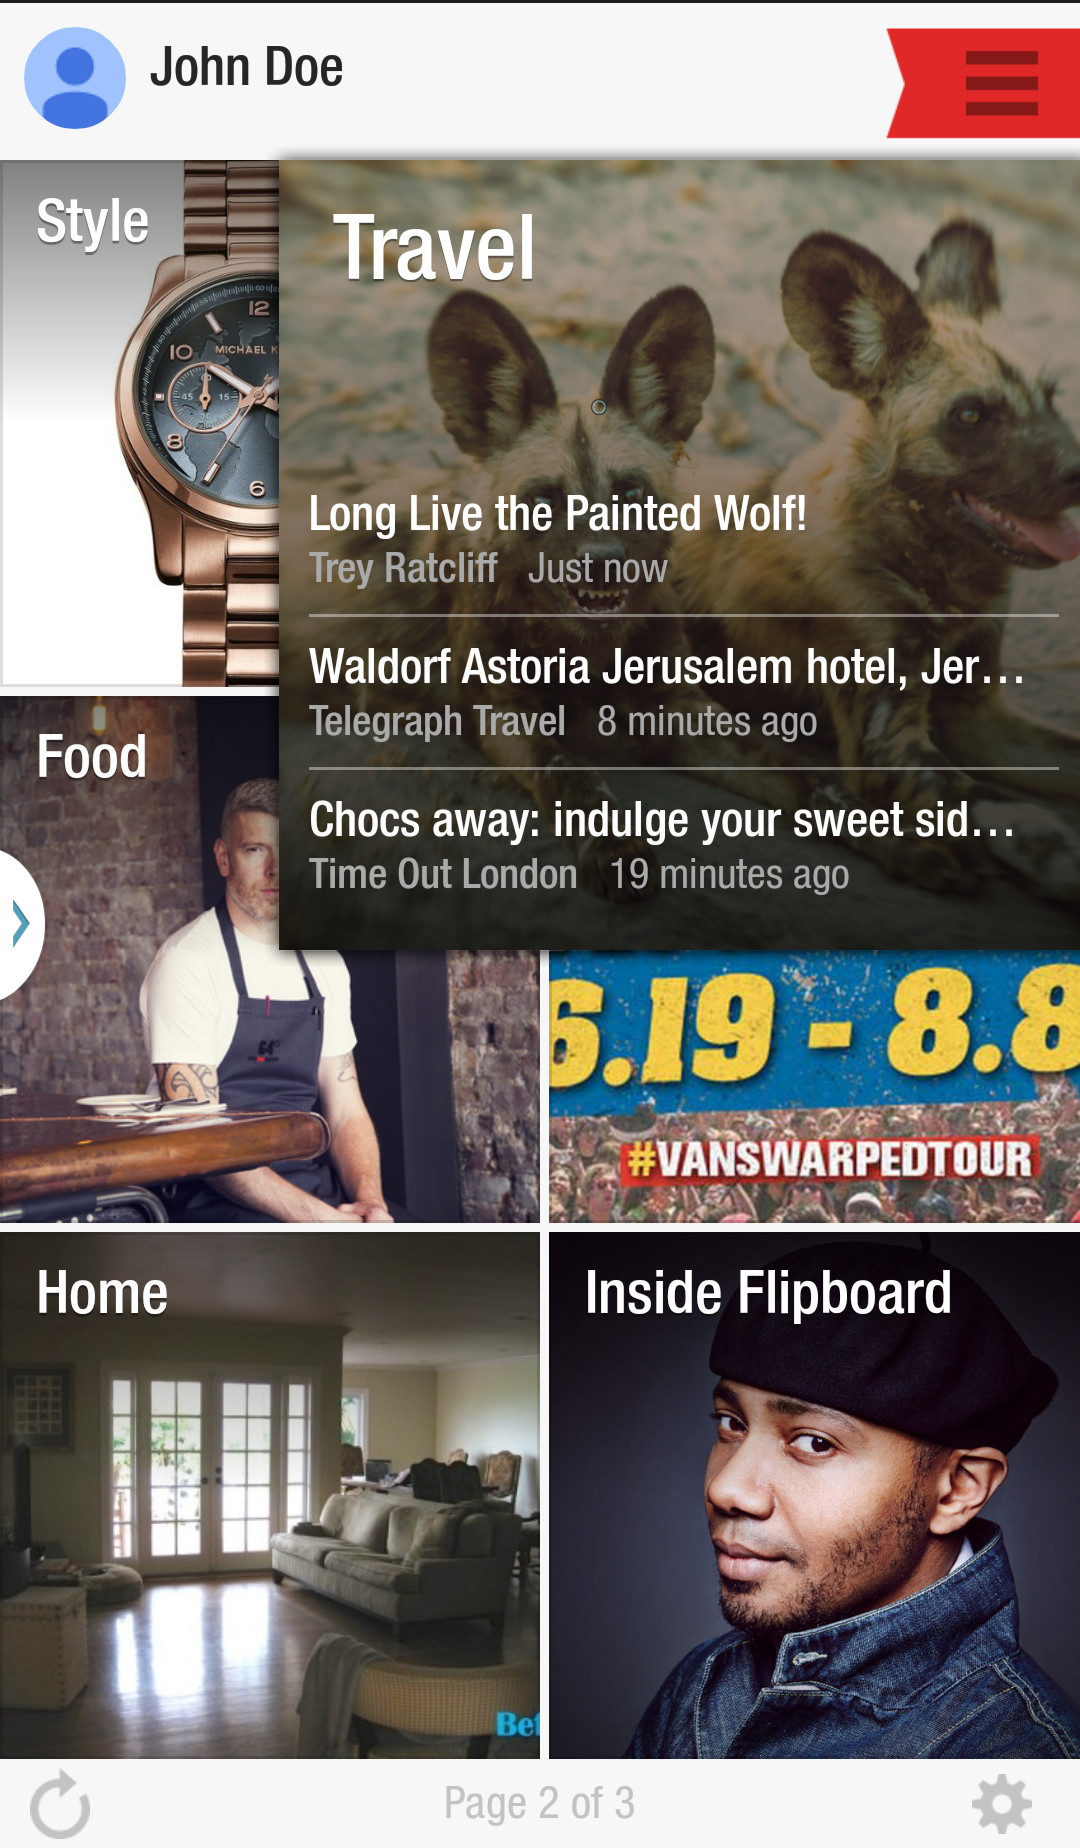 1414063855_make-use-of-air-view-with-flipboard.jpg